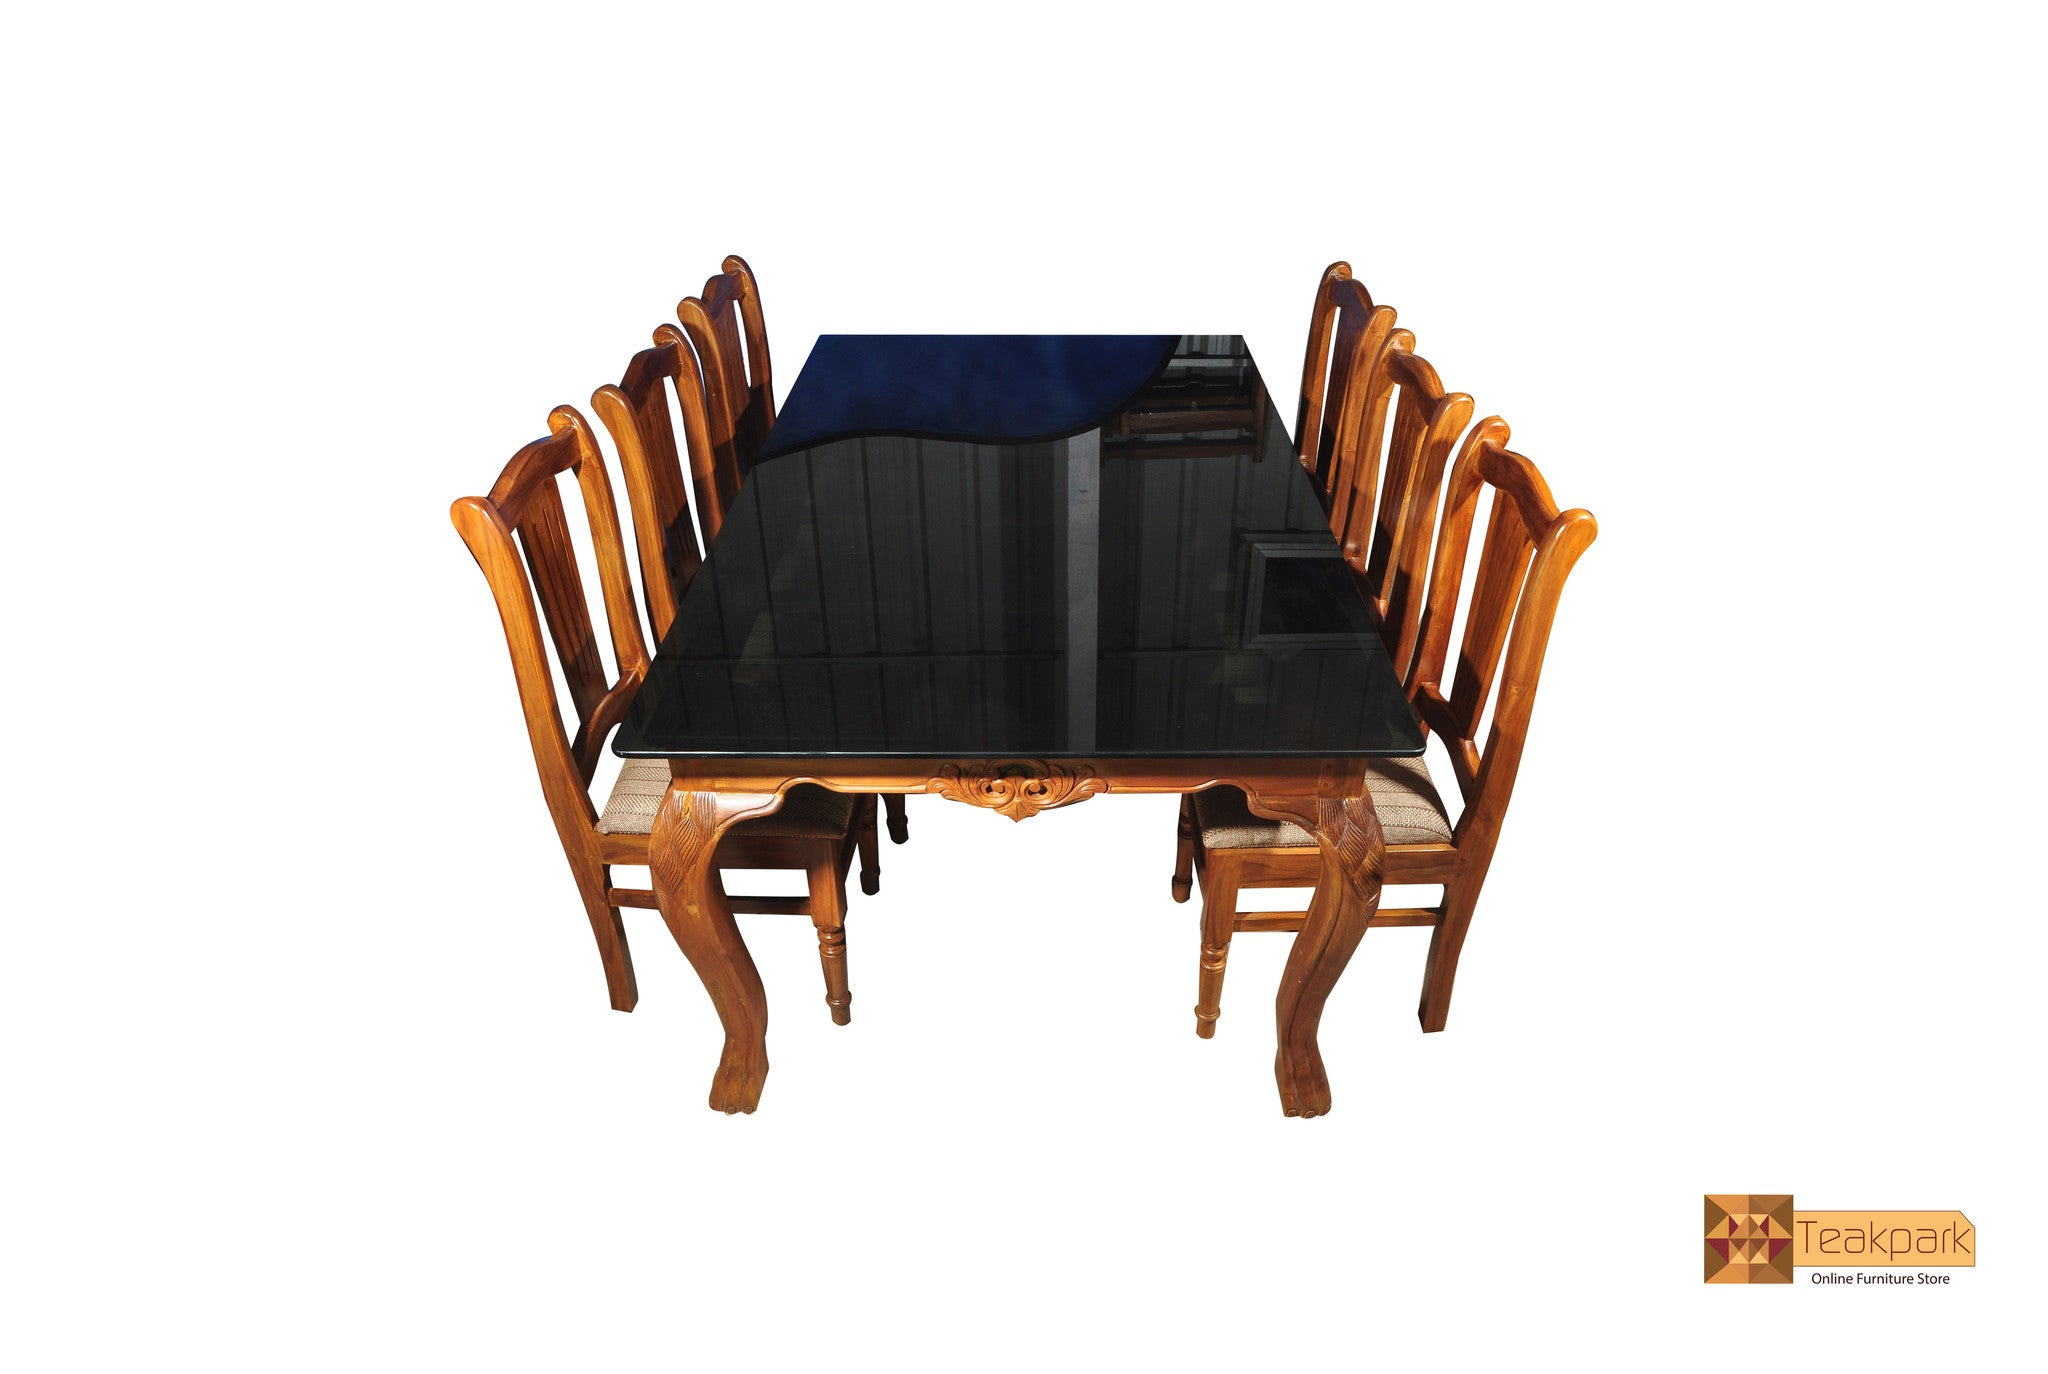 Indus Teak Wood Dining Set Glass Top Table With 6 Chairs Teakpark